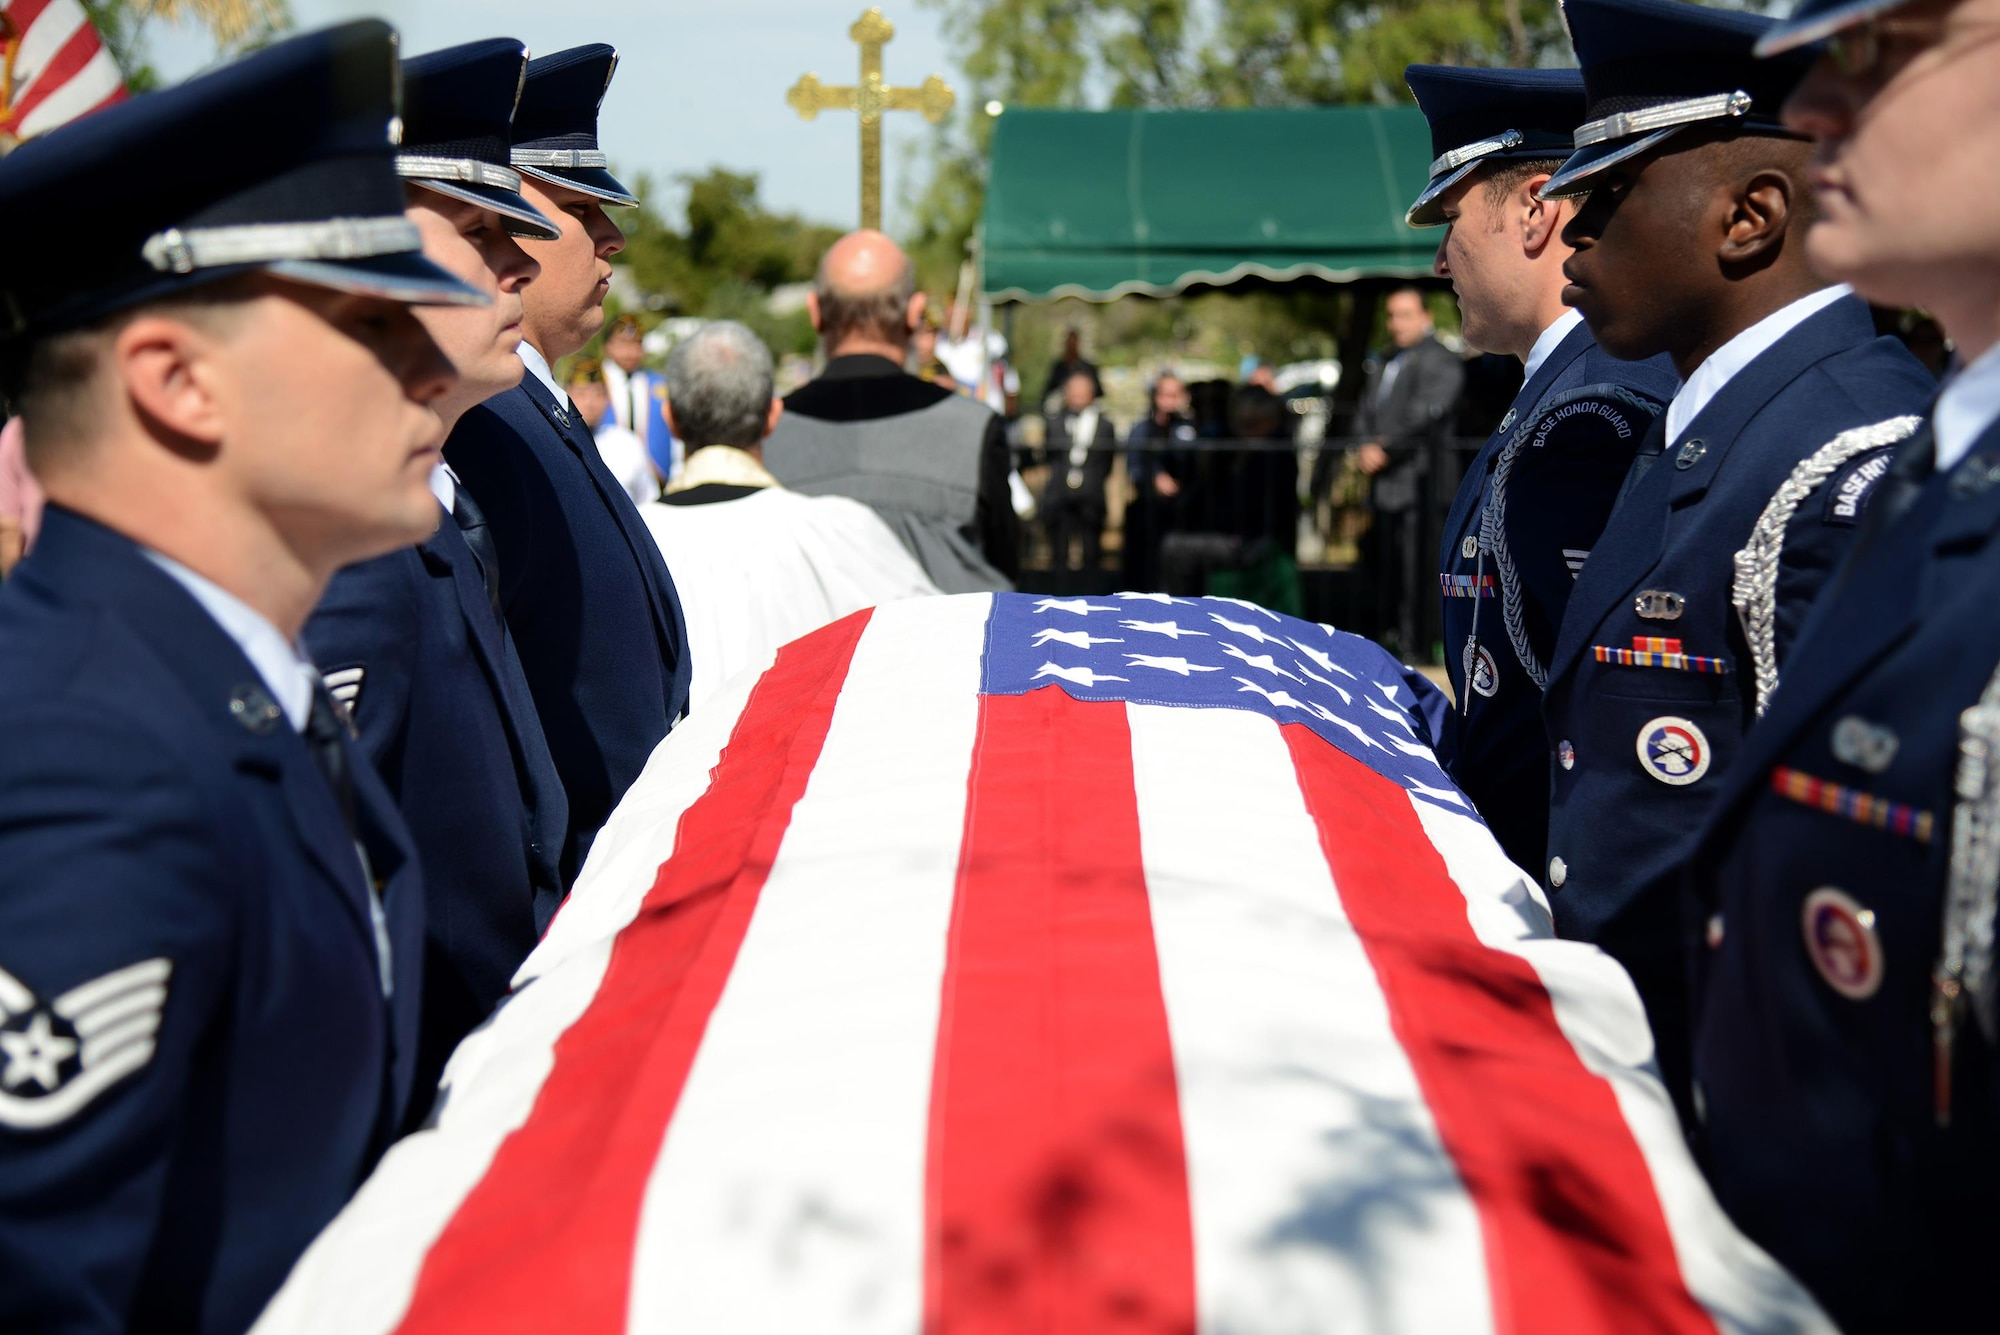 The Laughlin Honor Guard carries the casket of retired Maj. Gen. Homer Lewis in Eagle Pass, Texas, on Oct. 28, 2015. The body bearers carry the fallen to the gravesite while keeping the casket perfectly level and showing no visible signs of strain; to ensure military bearing is maintained at all times. (U.S. Air Force photo by Tech. Sgt. Steven R. Doty)(Released)